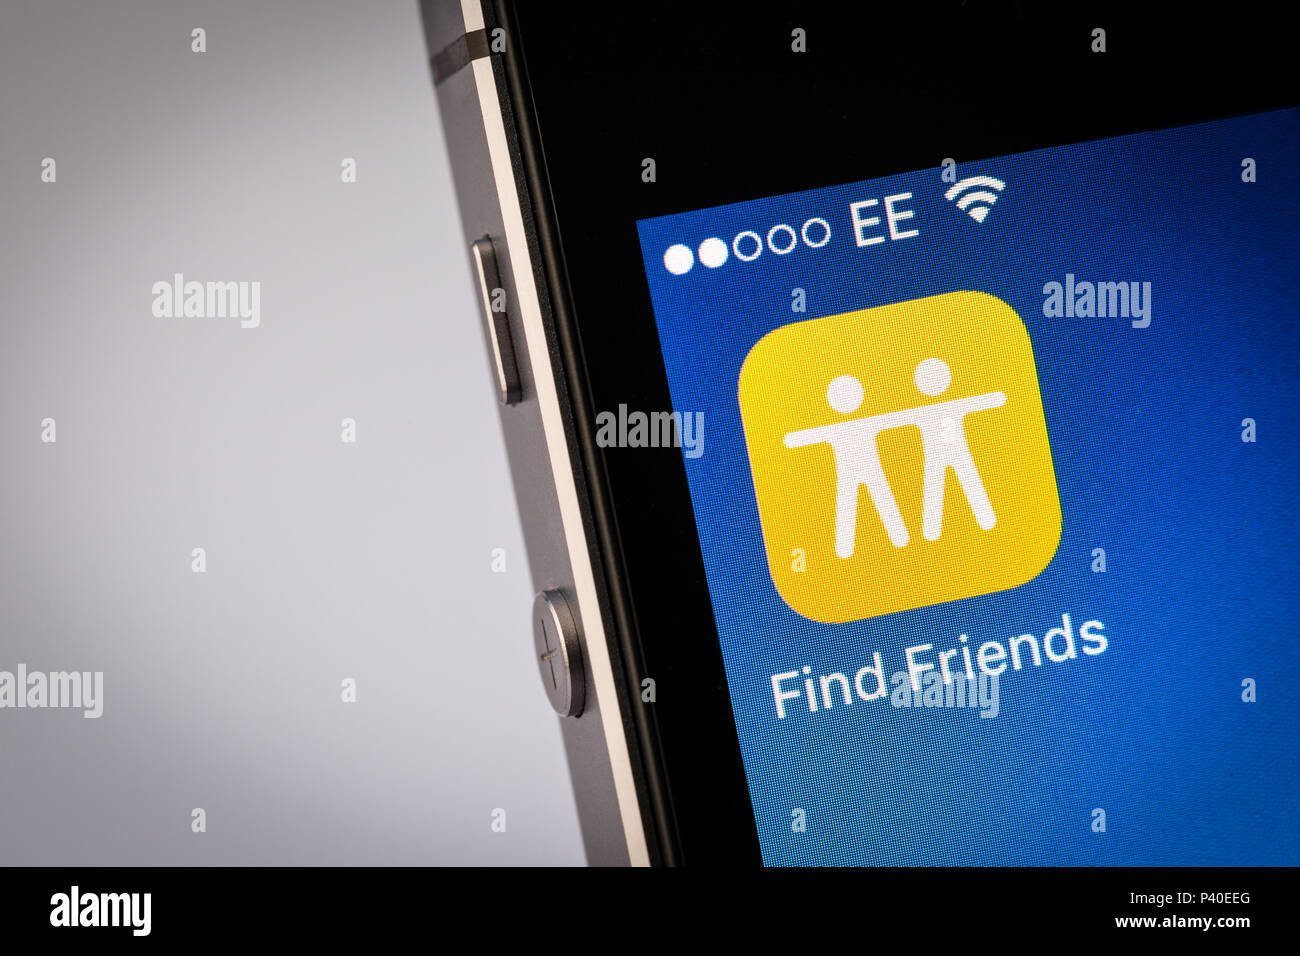 Find Friends App on an iPhone smartphone - Stock Image